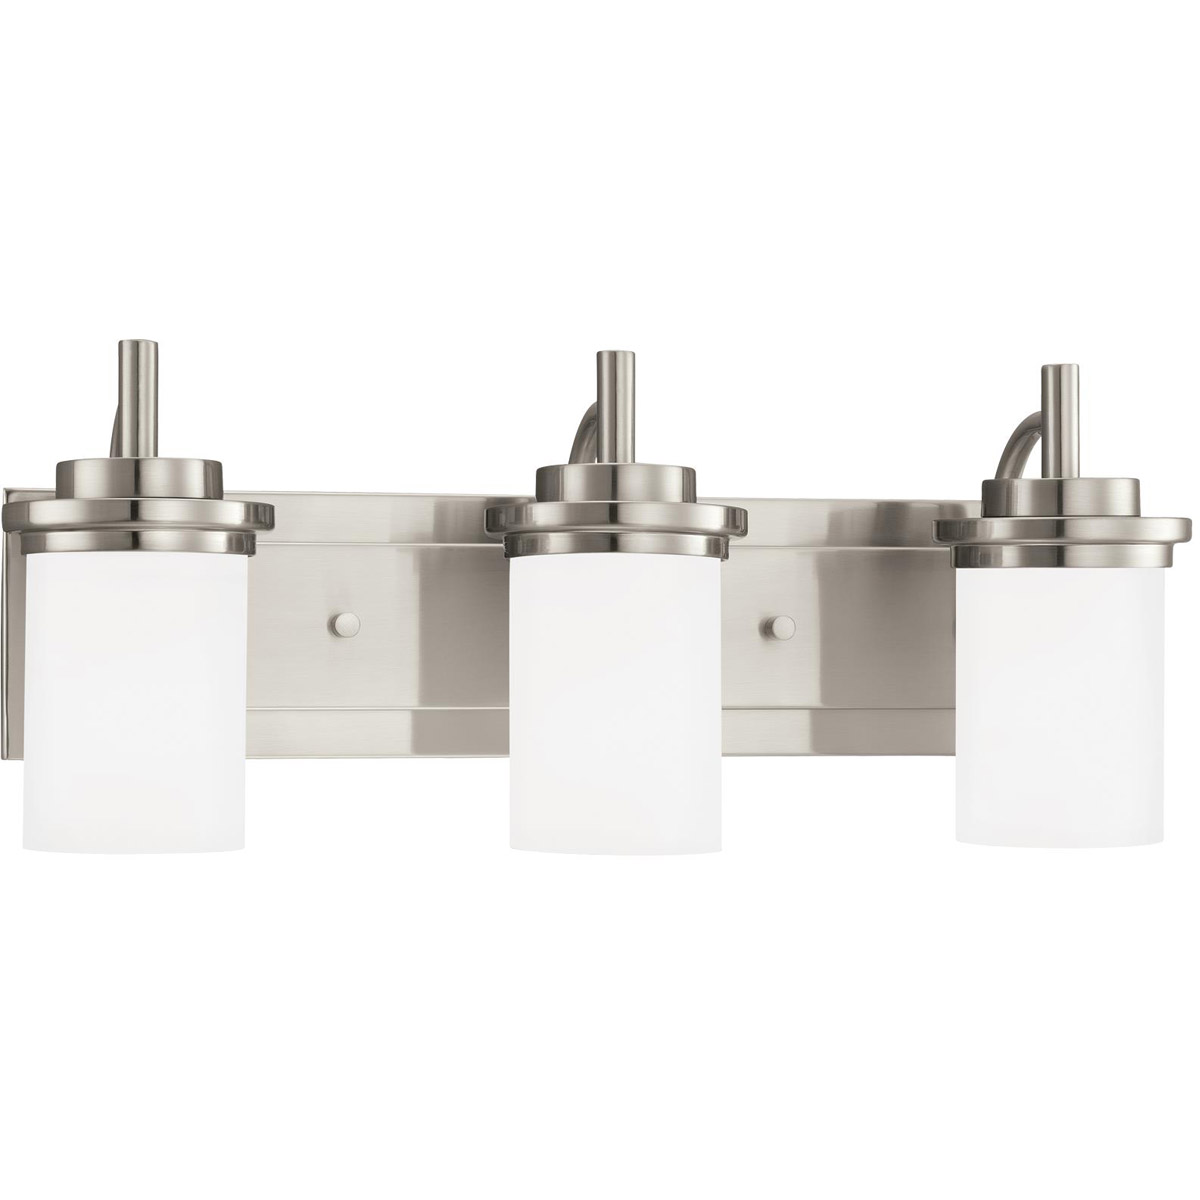 Sea Gull 44662-962 Winnetka 3 Light 23 inch Brushed Nickel Bath Vanity Wall Light in Satin Etched Glass, Standard photo